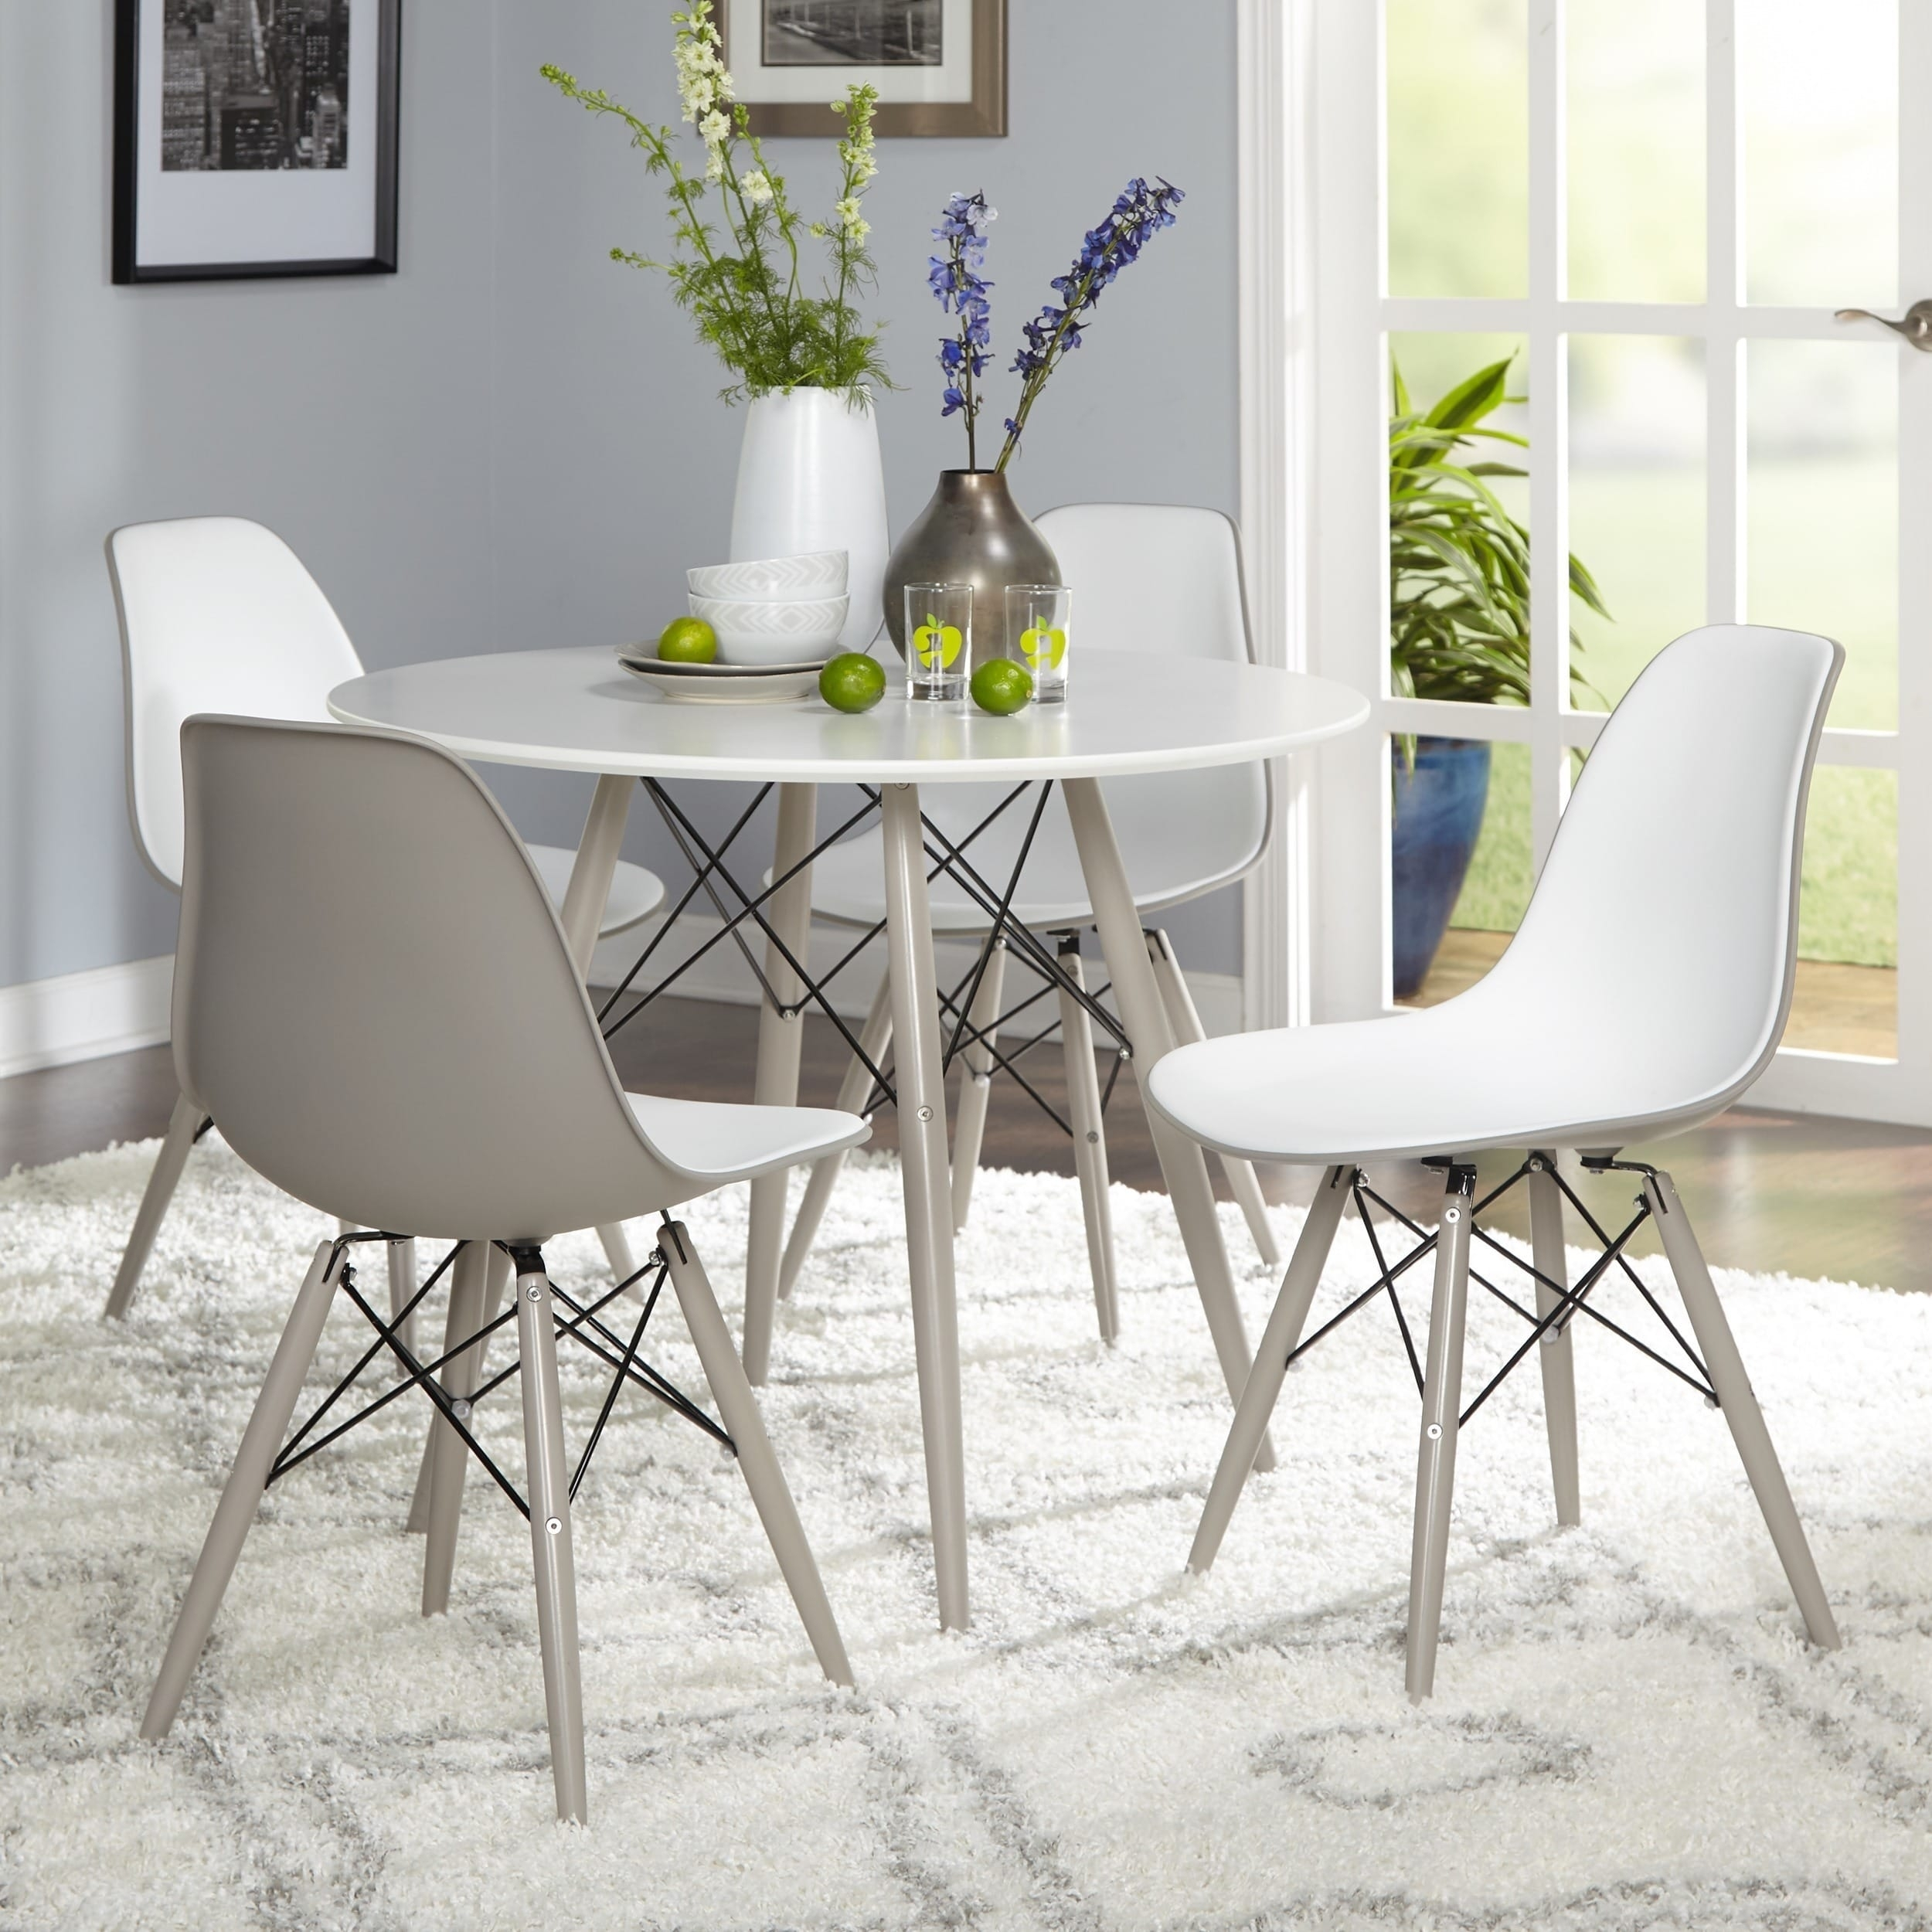 Shop Simple Living Mid-Century Elba Dining Set - On Sale - Free with regard to Elba Ottoman-Coffee Tables (Image 28 of 30)